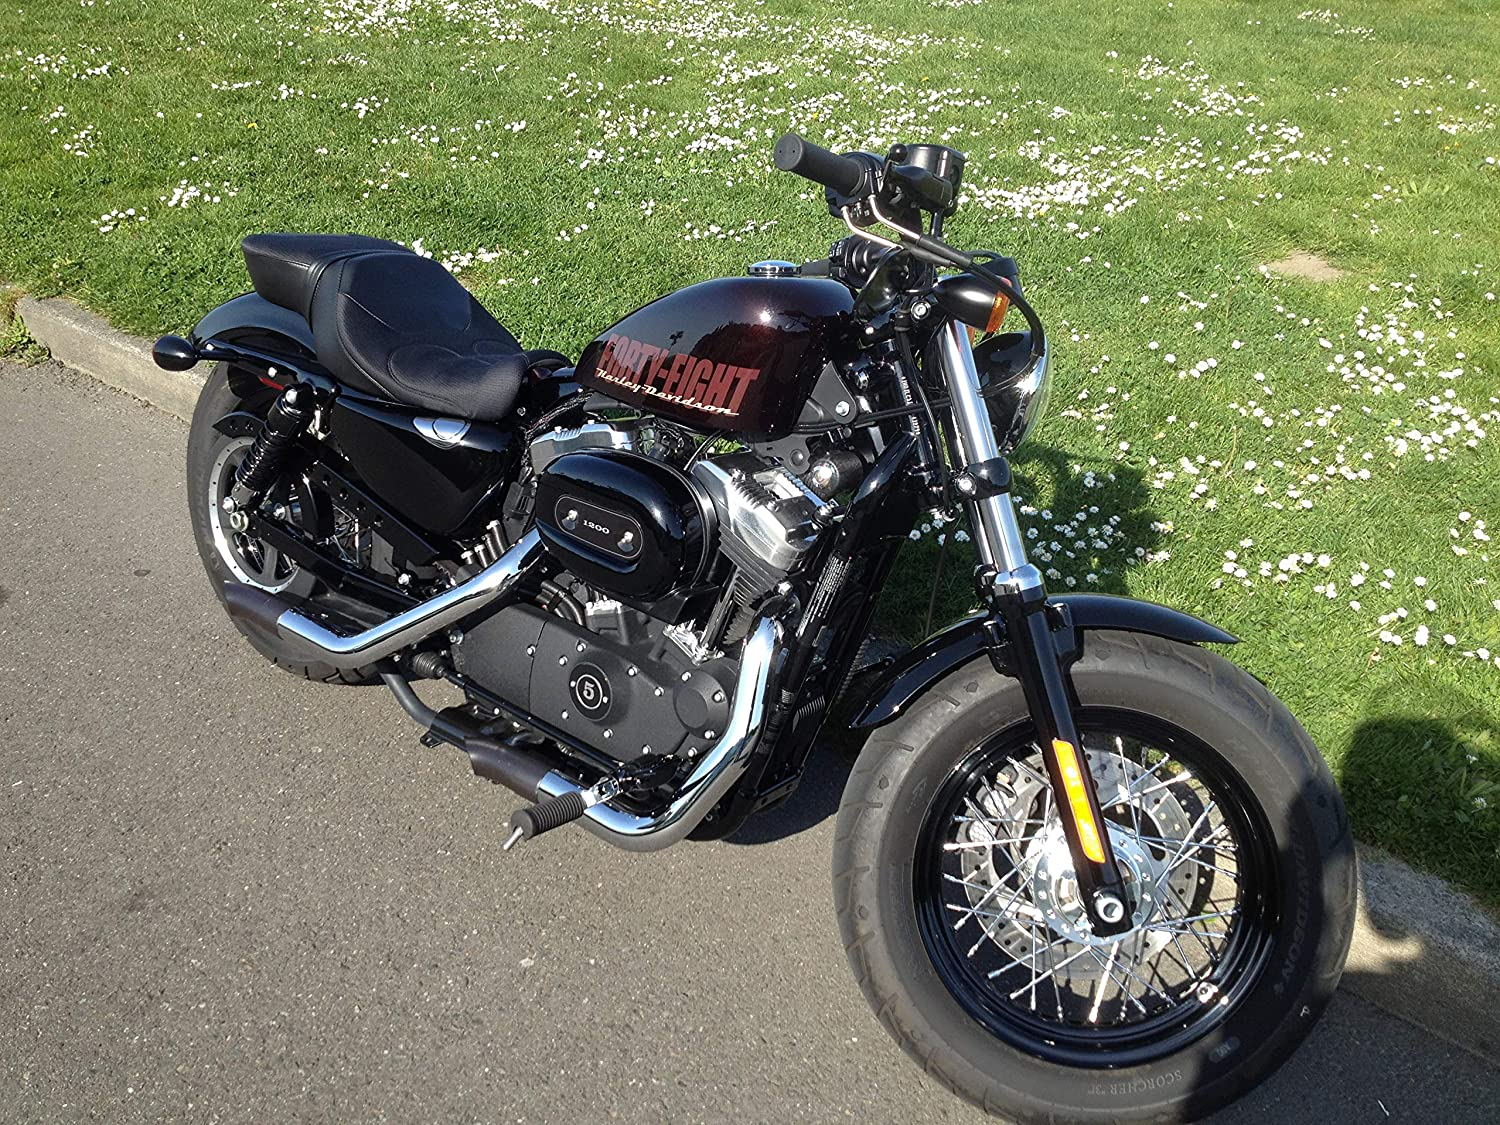 Radiant Cycles Stealth GP Exhaust GP series for 2014-2020 HARLEY DAVIDSON Iron Sportster 883 CHROME SLIP-ON